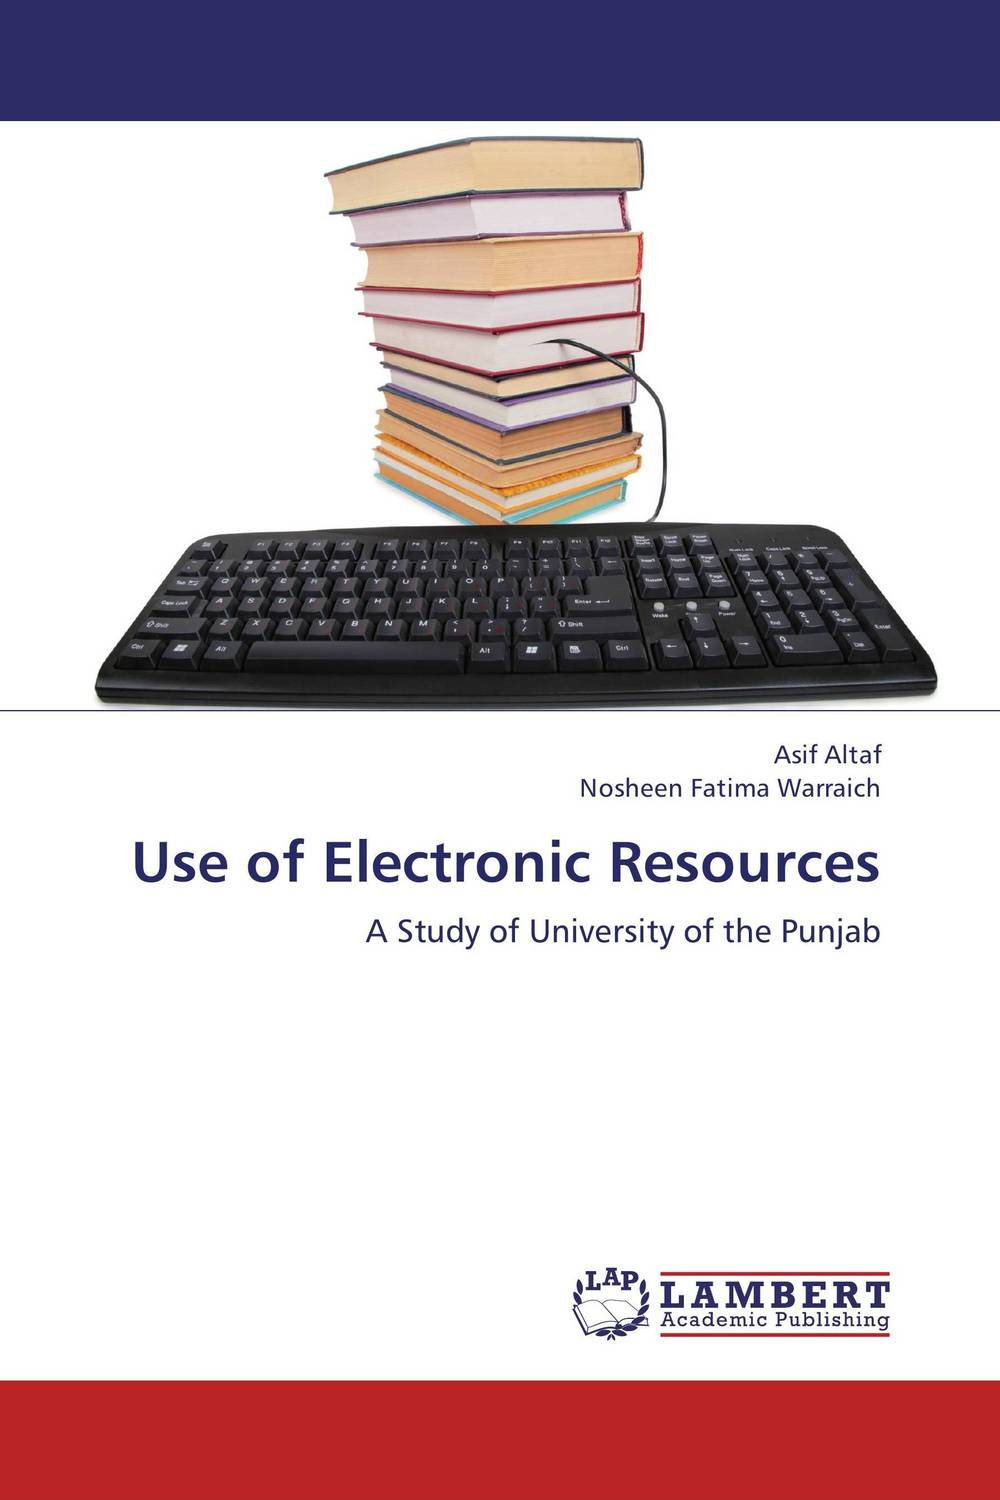 Use of Electronic Resources akhtar hussain and devendra kumar media information resources